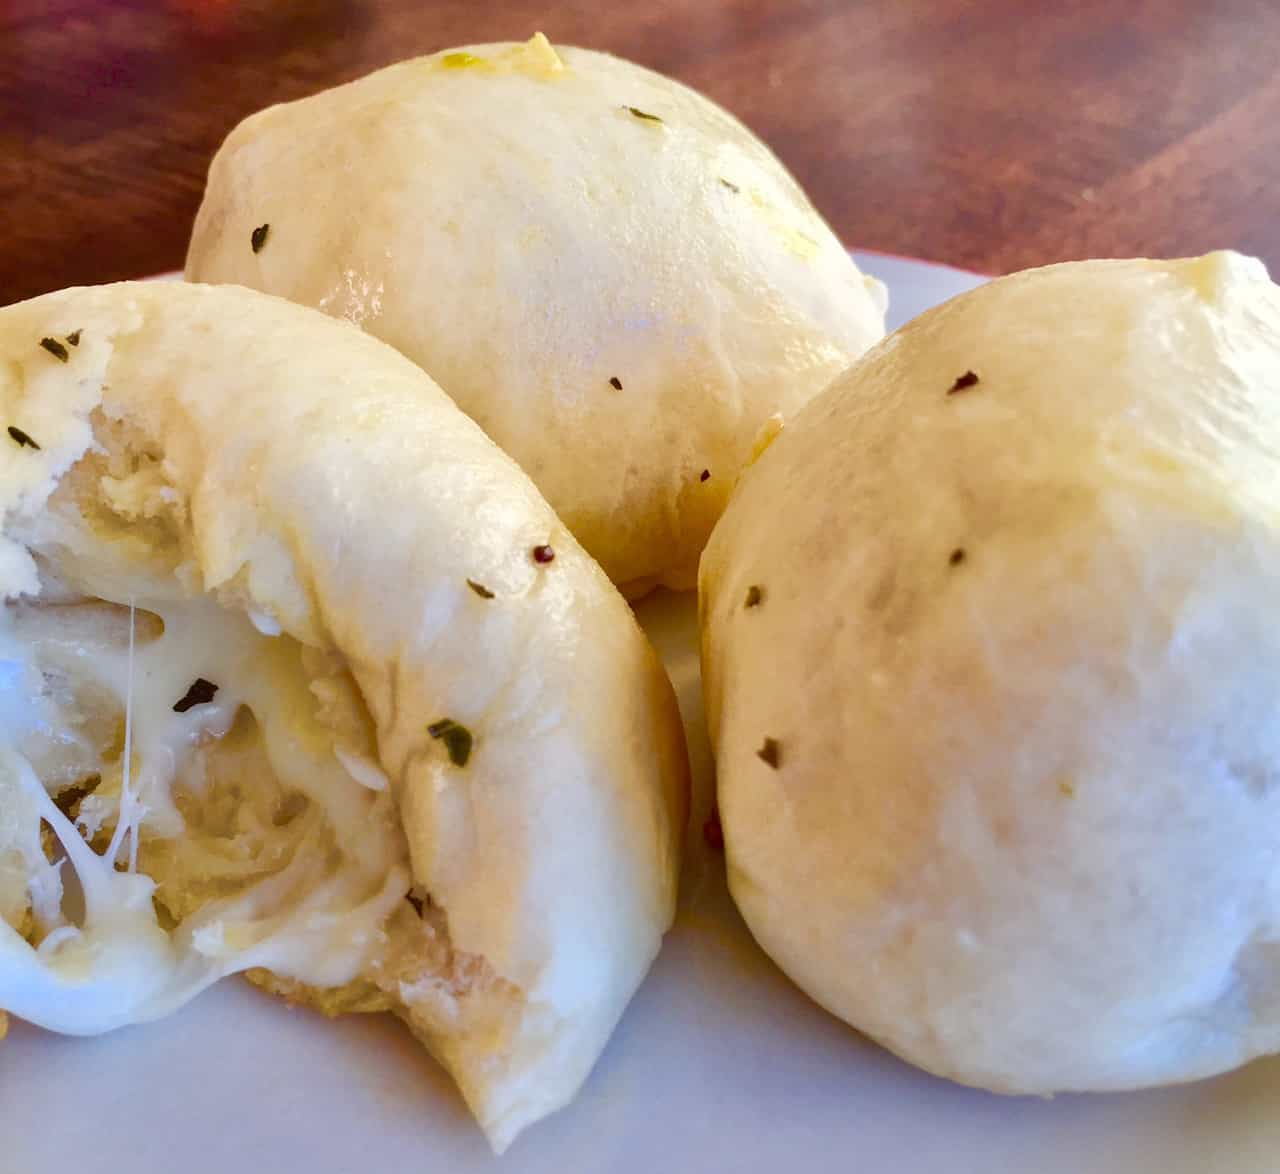 Garlic Herb Cheese Bombs - made with 5 simple ingredients!